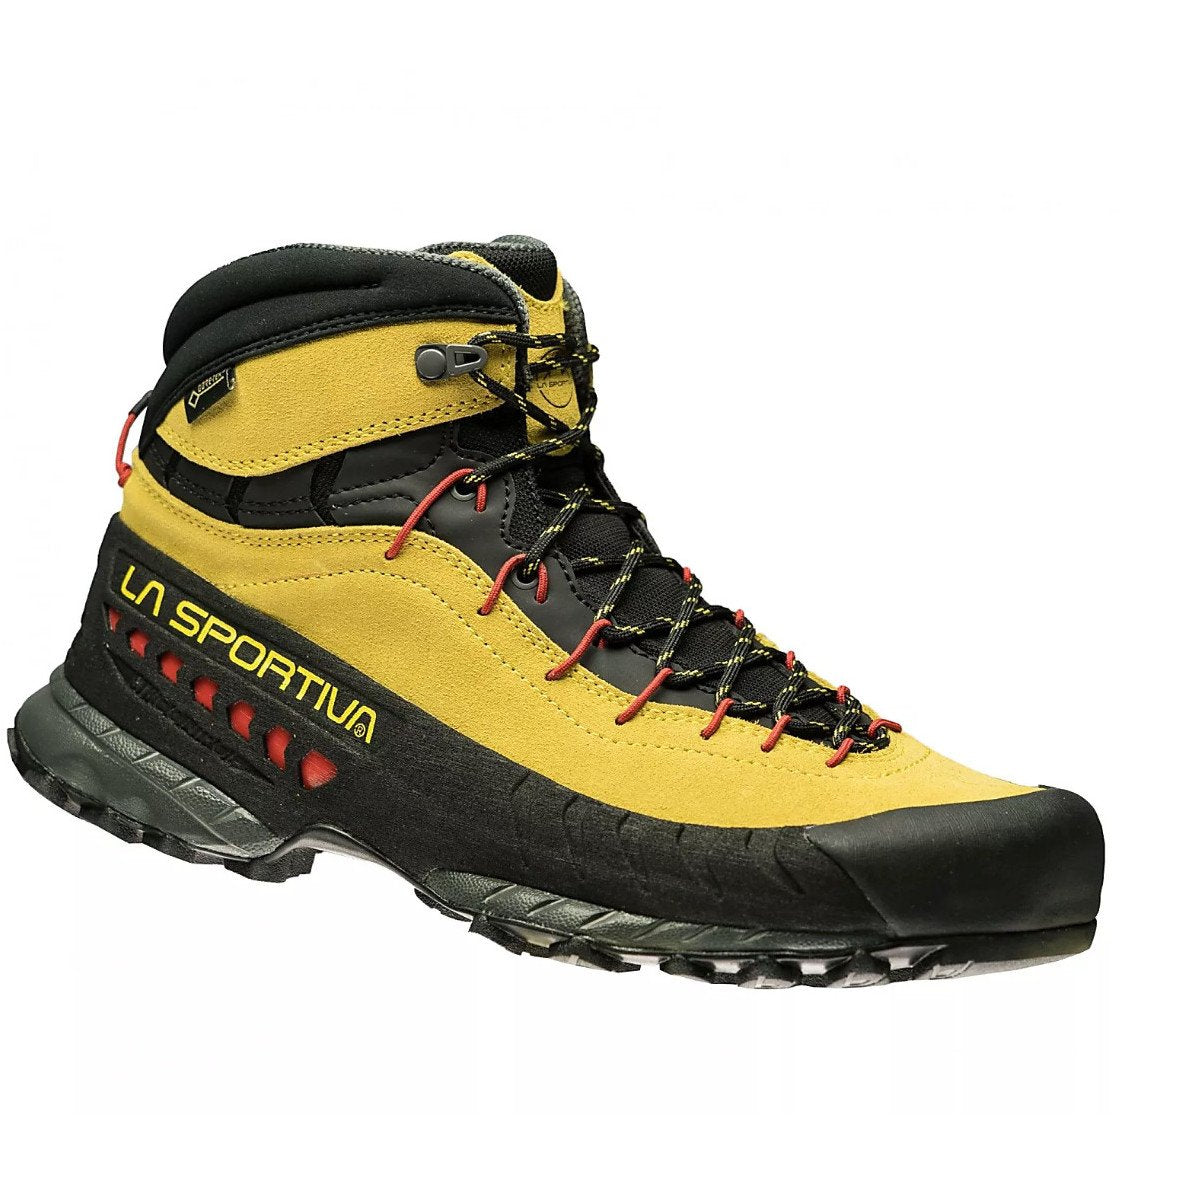 La Sportiva TX4 Mid GTX approach shoe, in black/yellow colours, outer side view